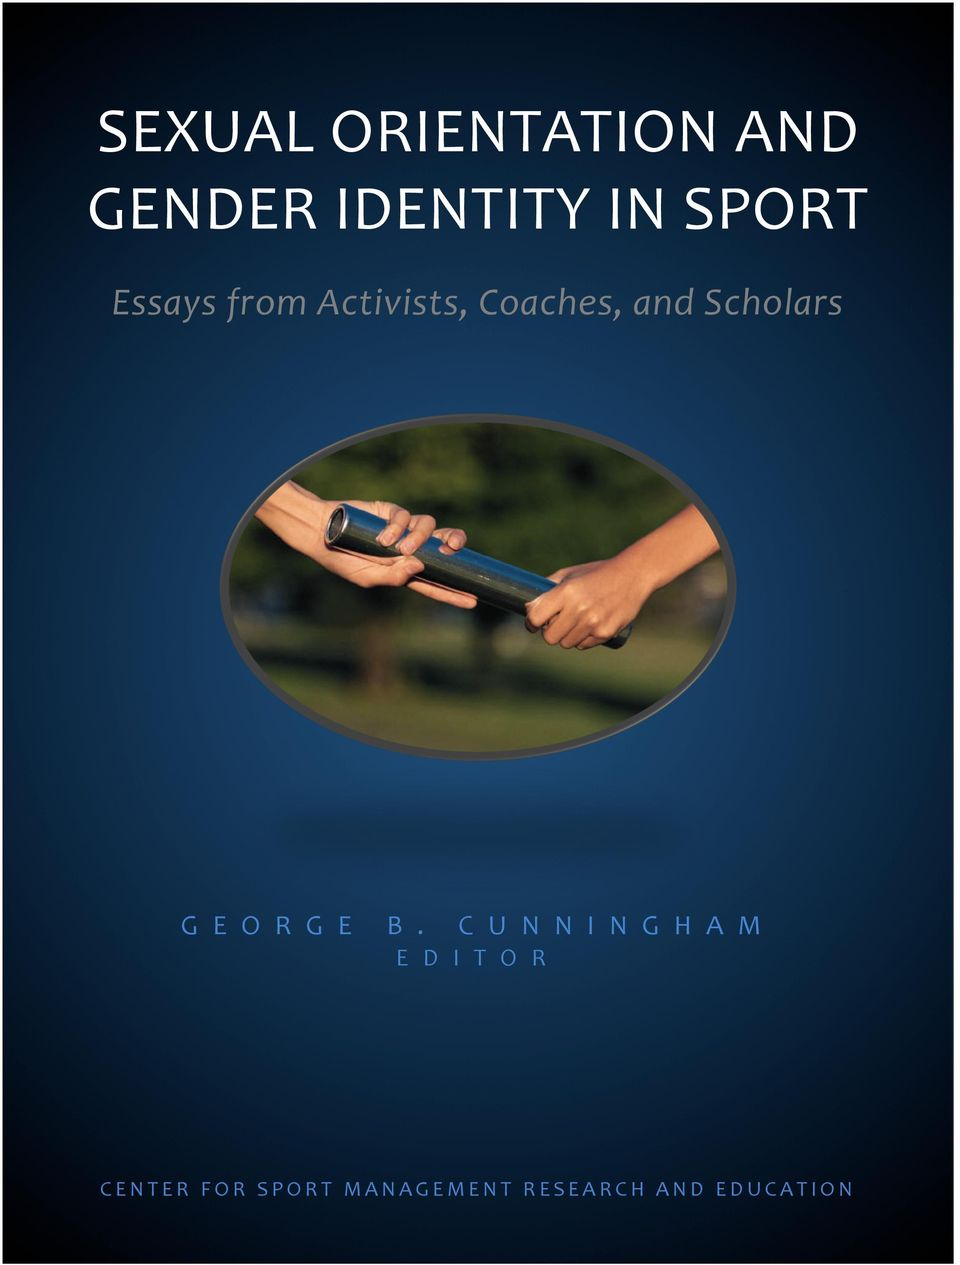 sexual orientation and gender identity in sport essays from c u n n i n g h a m e d i t o r c e n t e r f o r s p o